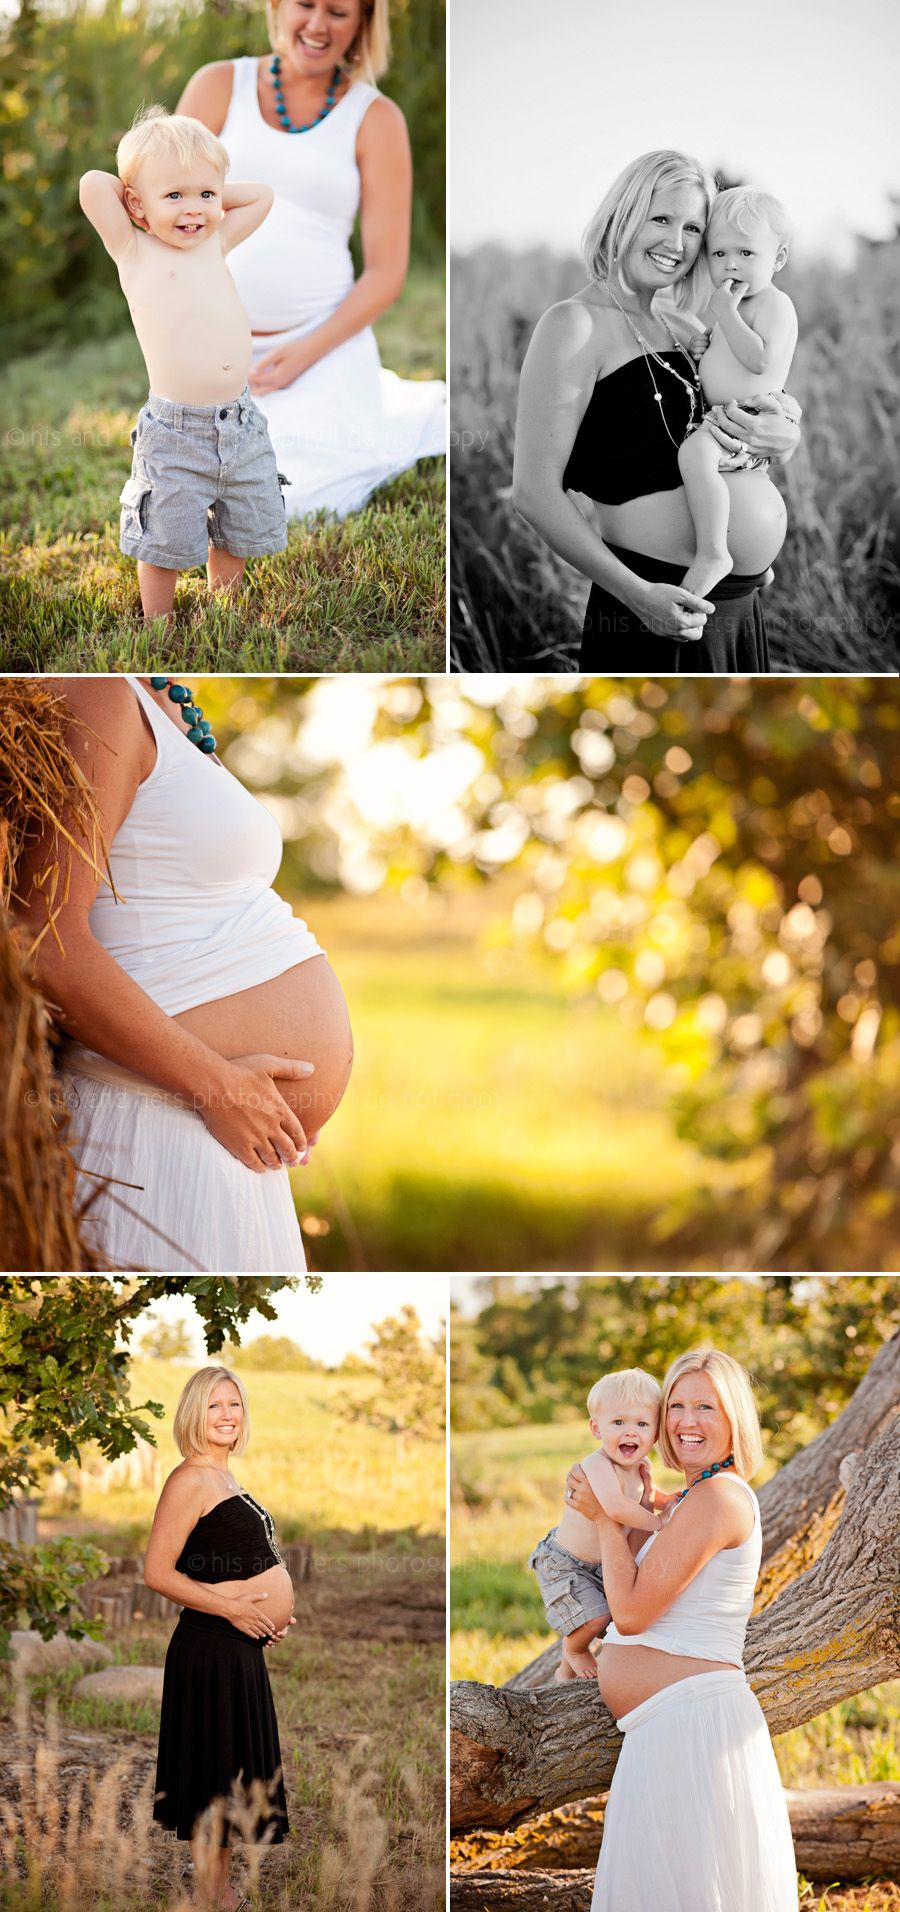 Brecken's New Baby | Maternity Photographer Des Moines, Iowa